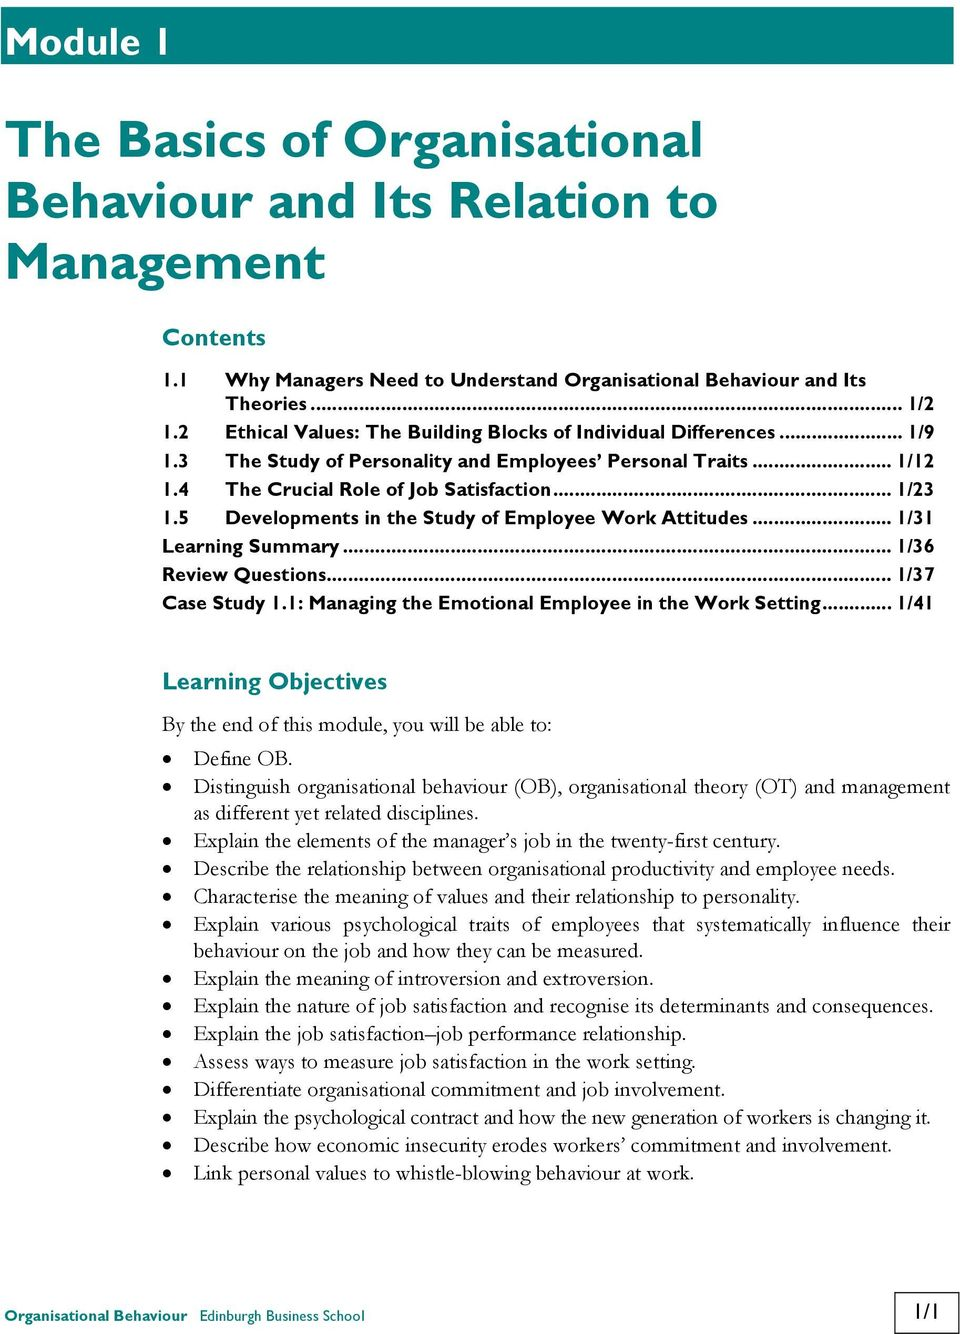 opportunities of organisational behaviour